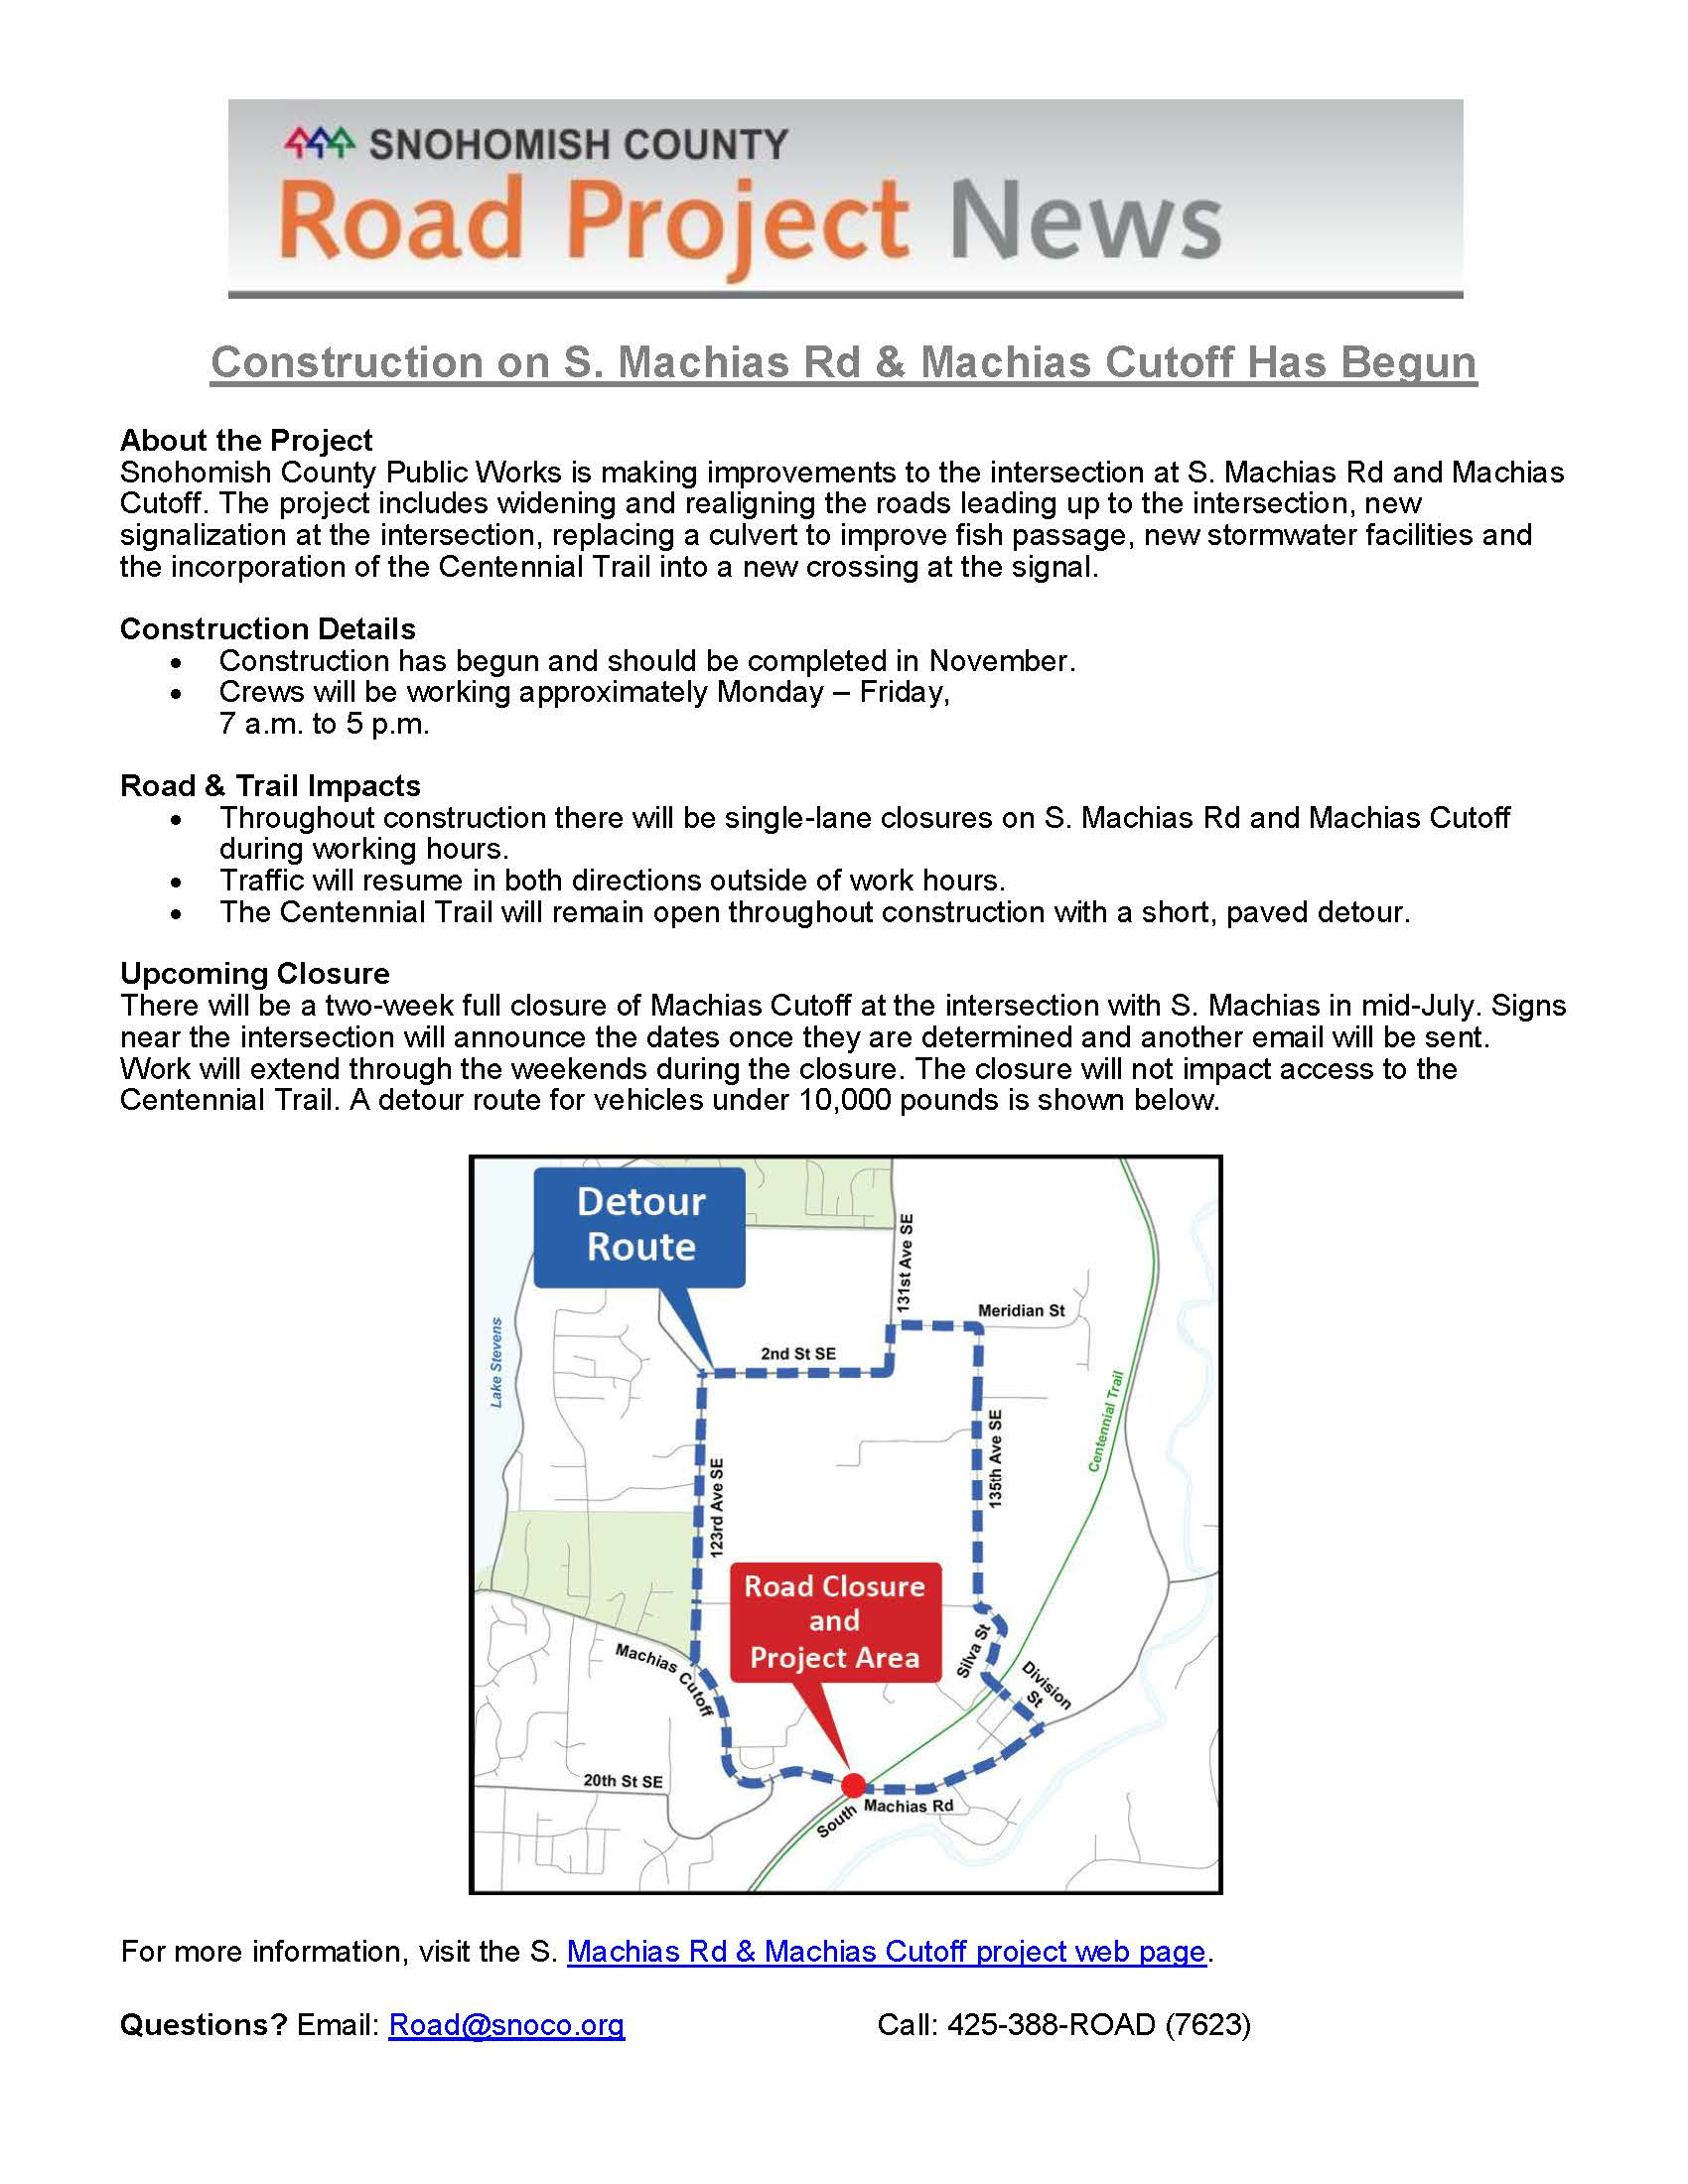 S. Machias Rd - Machias Cutoff Project